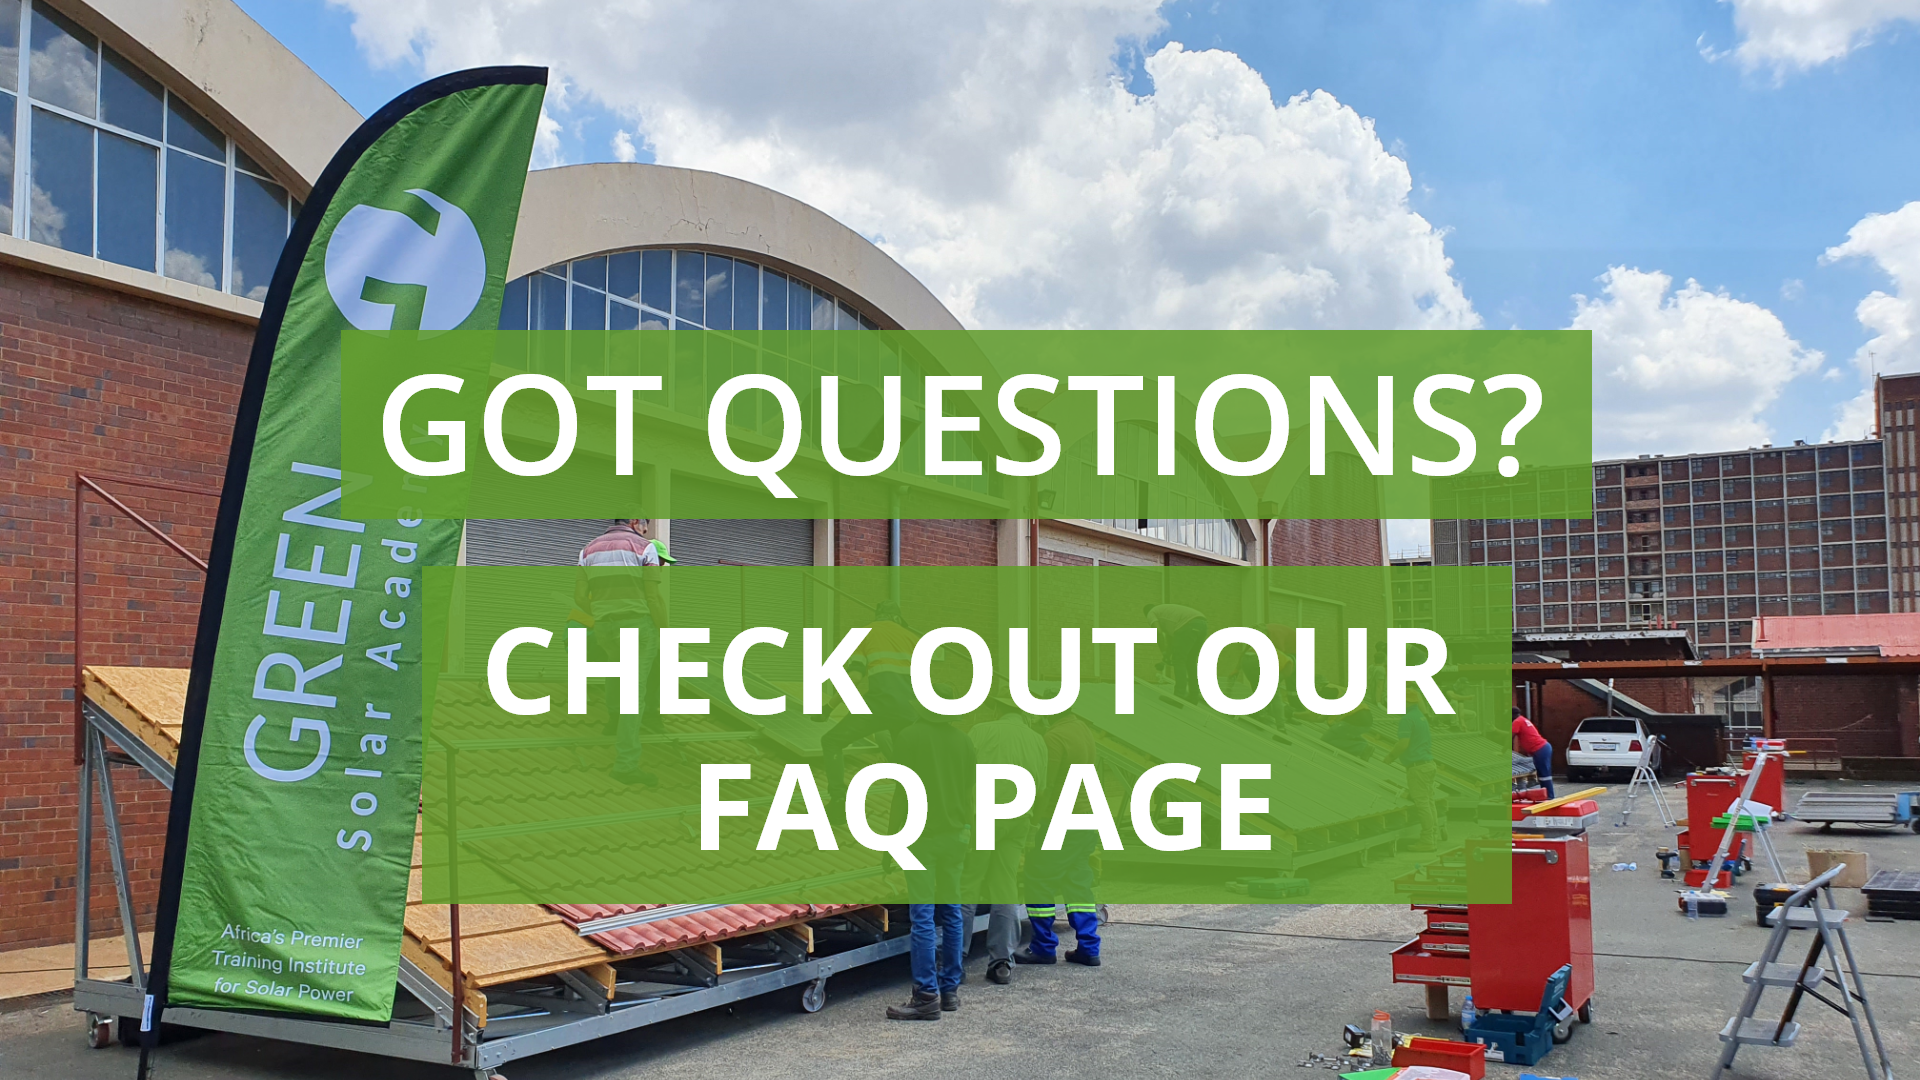 Got any questions? Check out our new FAQ page